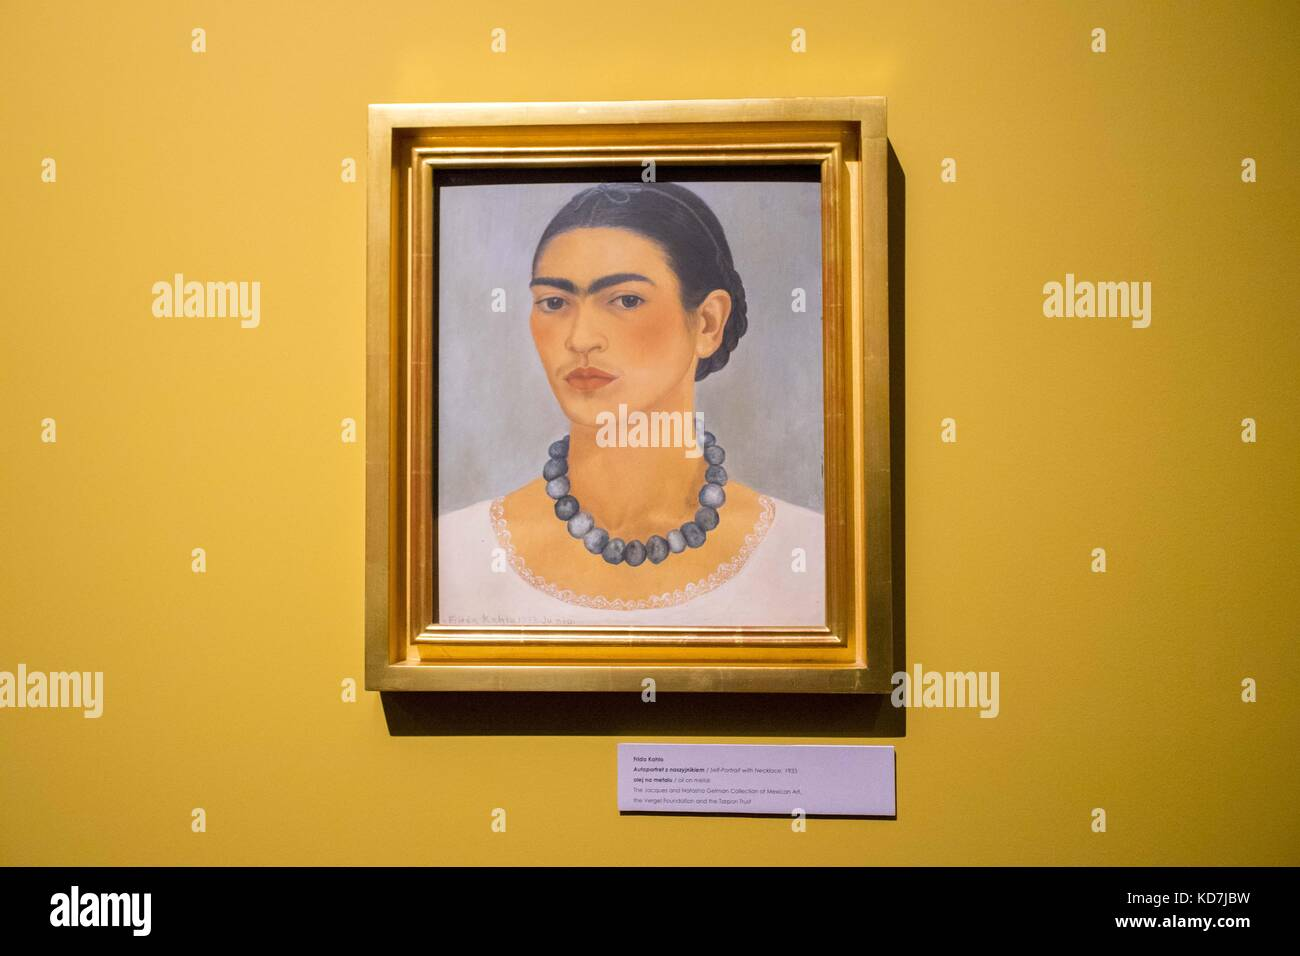 frida kahlo portrait stockfotos frida kahlo portrait bilder seite 2 alamy. Black Bedroom Furniture Sets. Home Design Ideas